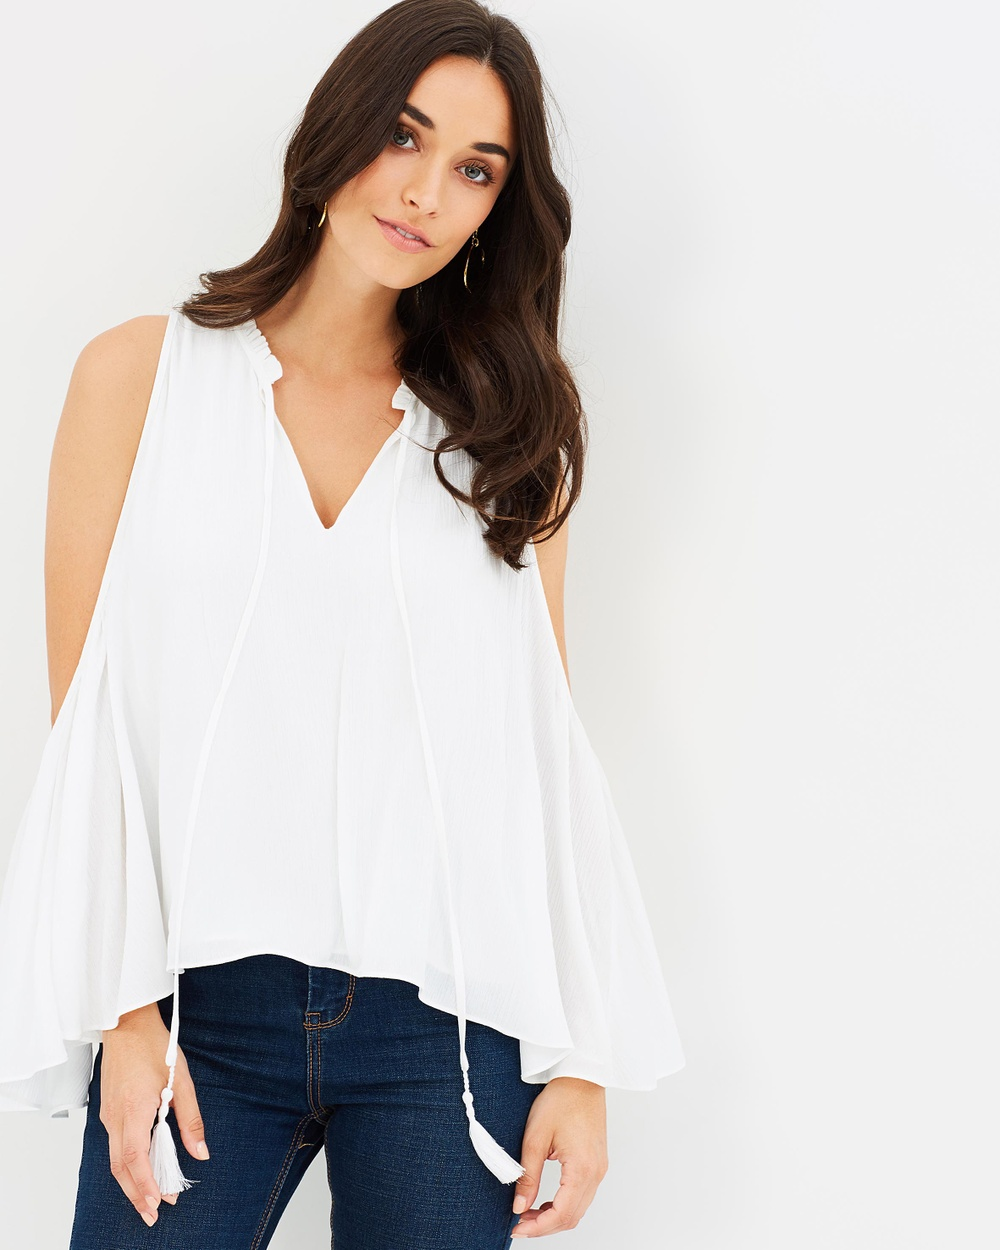 Guess Kira Soft Gauze Top Tops White Kira Soft Gauze Top